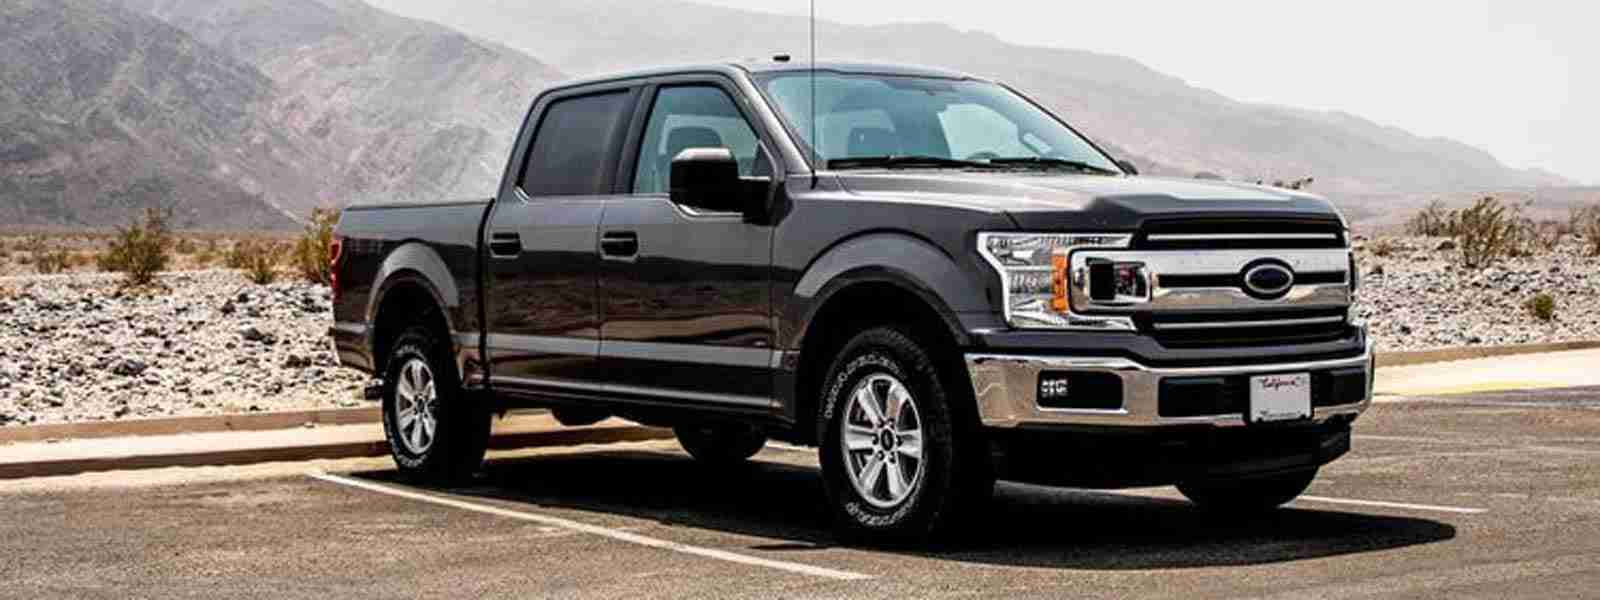 Best Tires For Ford F350 Super Duty: Buyer's Guide